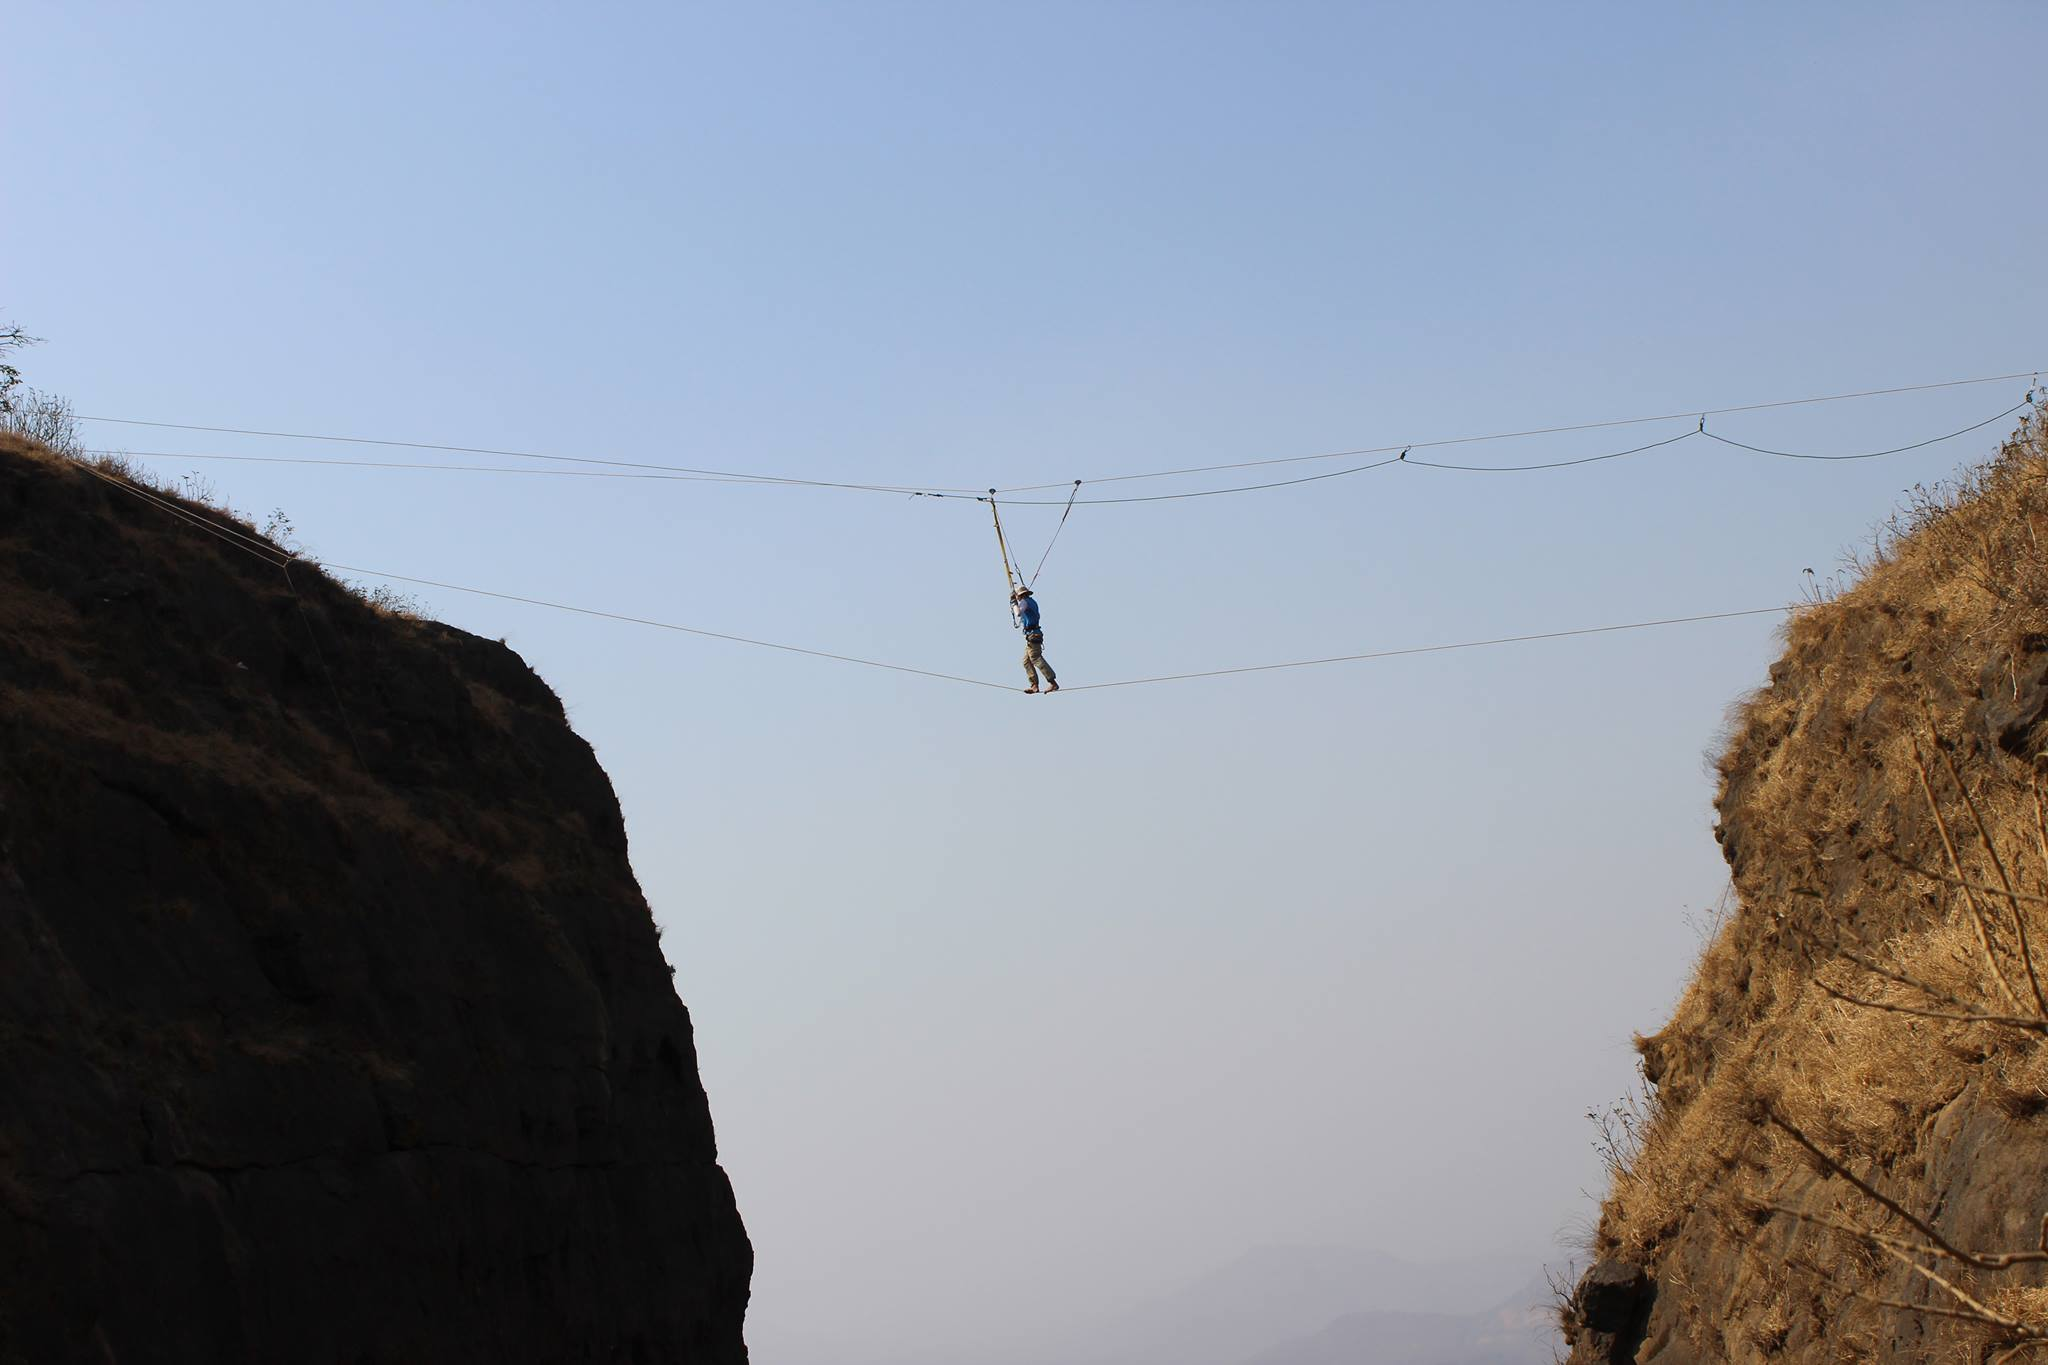 Highline & Zipline